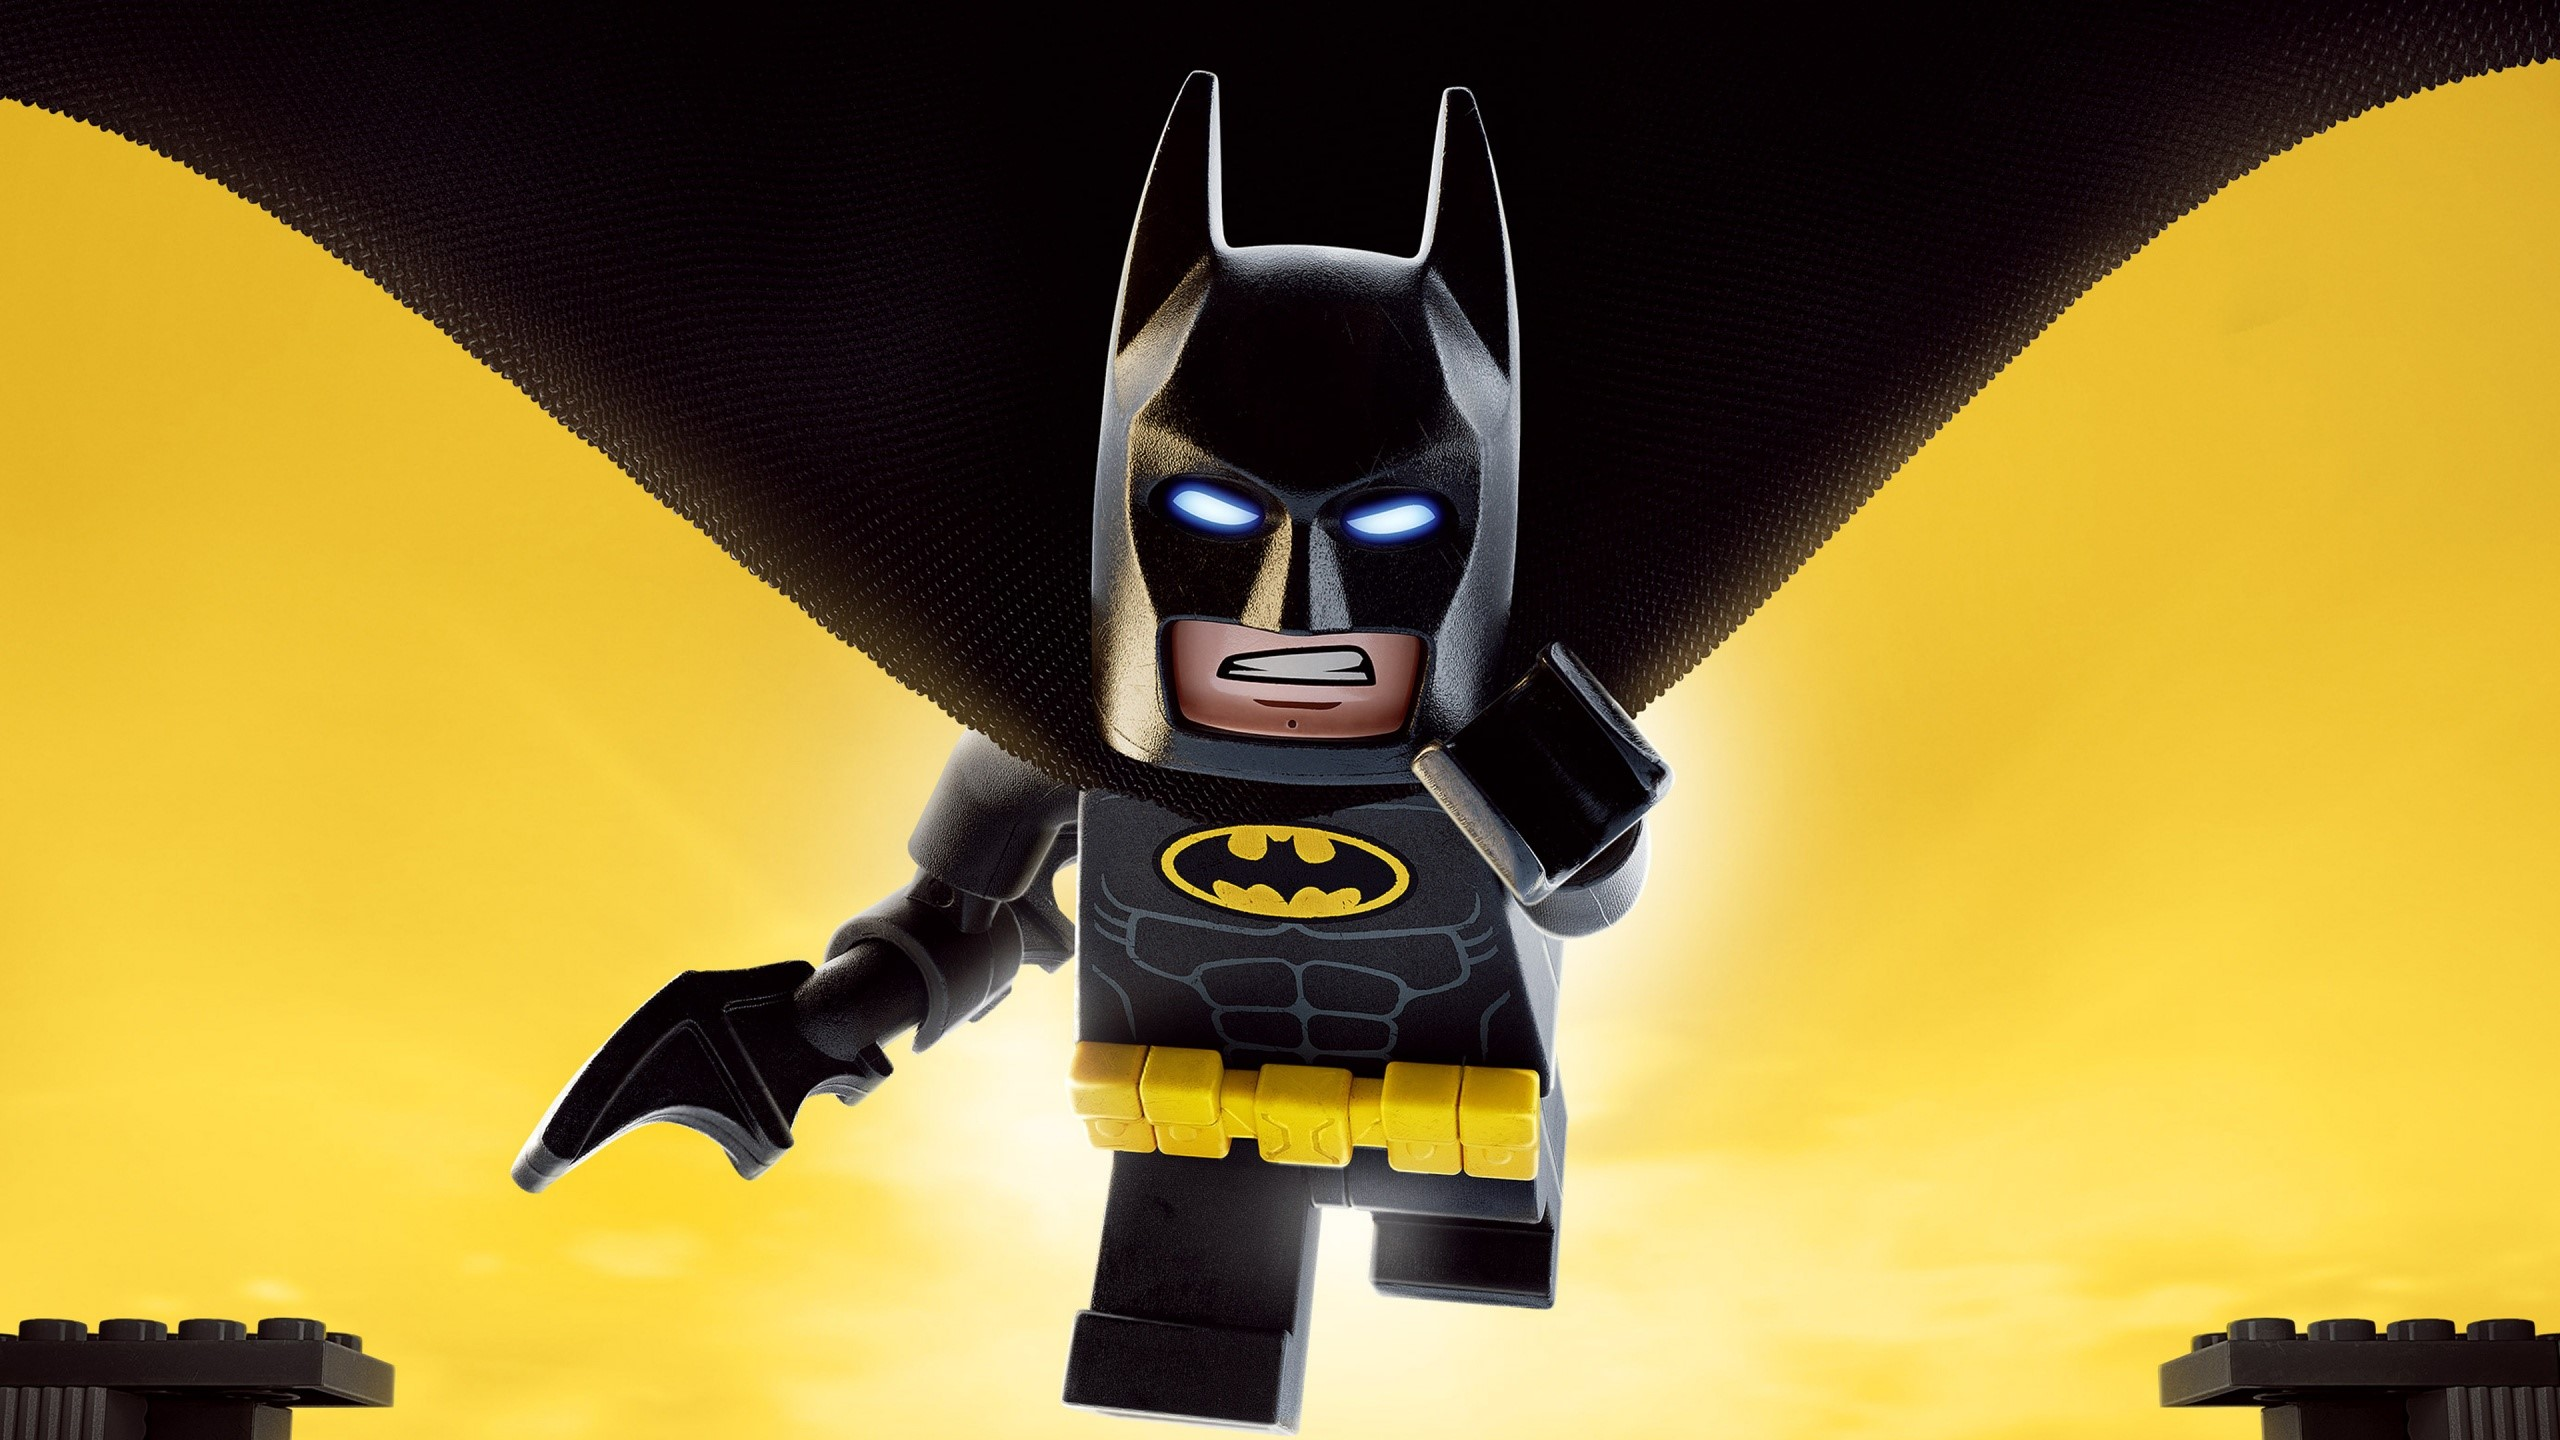 Wallpaper Película Lego Batman Images